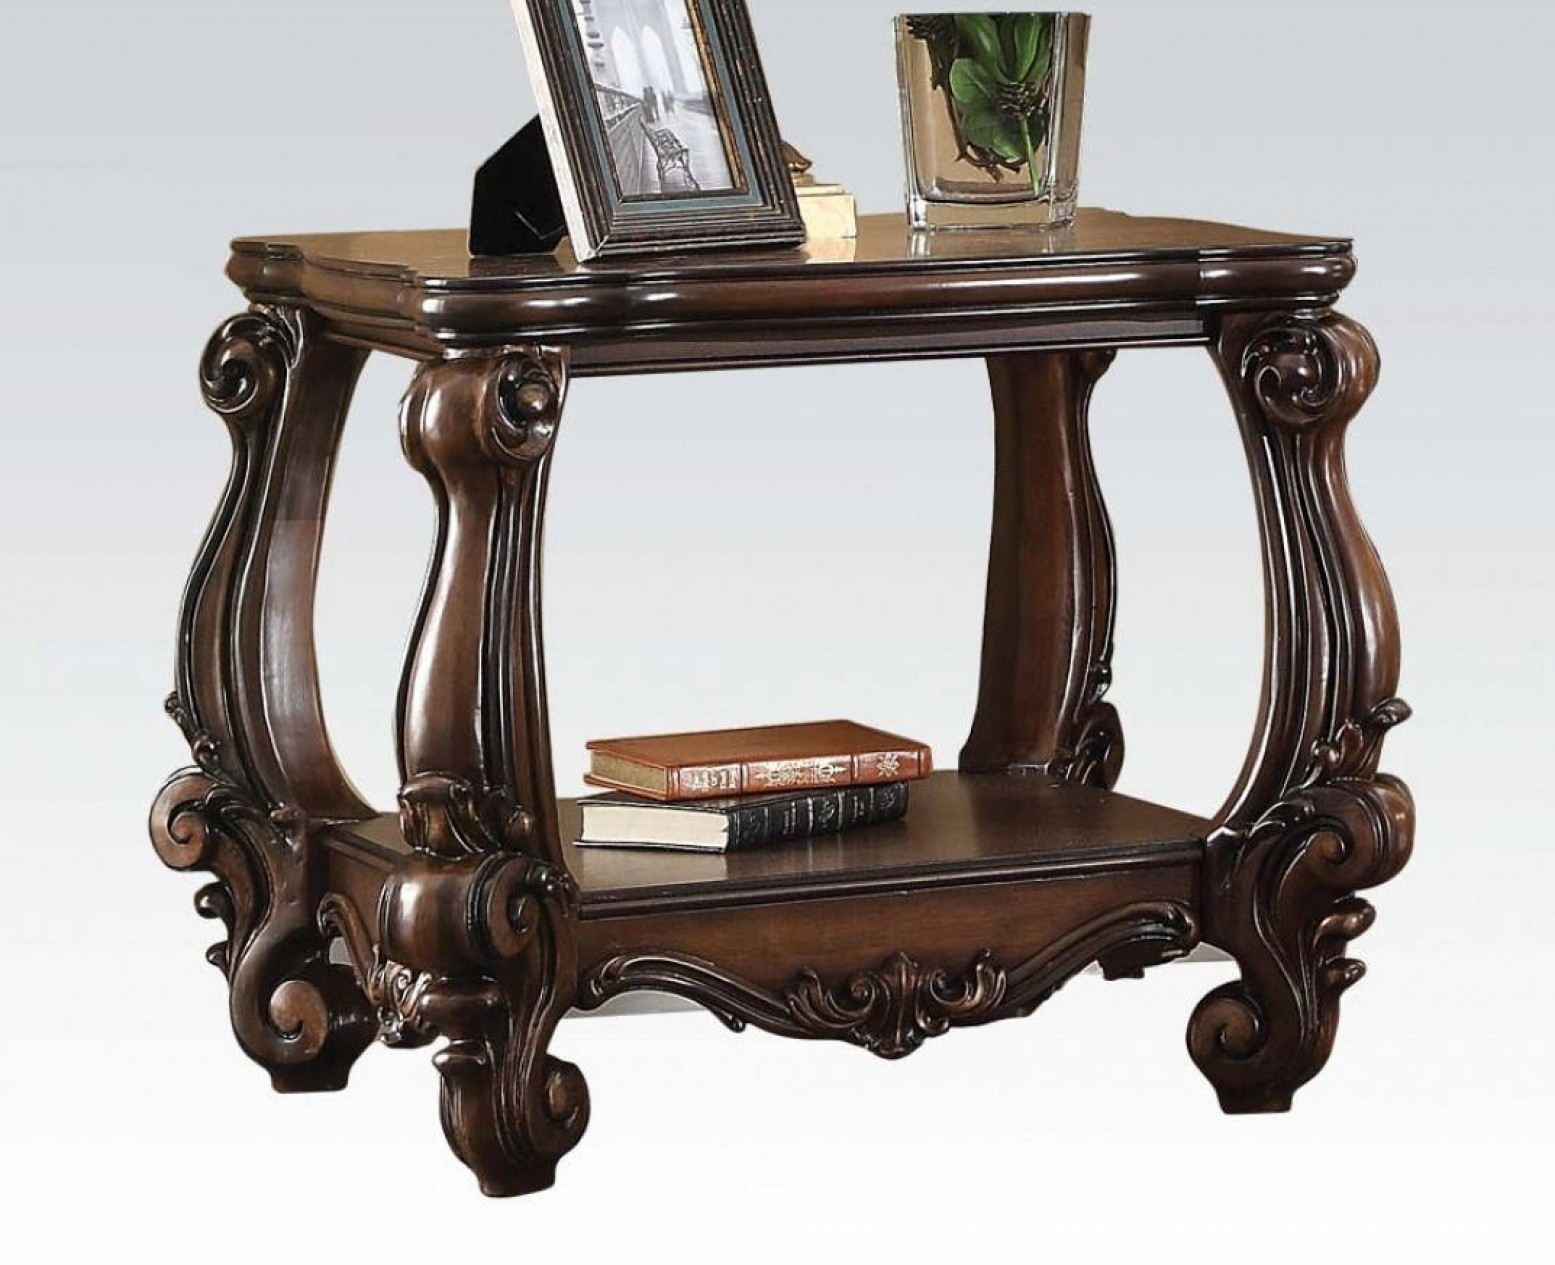 versailles end table cherry oak best tables for pallet living room beautiful furniture rod iron and wood coffee chinese style inch wide side using galvanized pipe legs patio